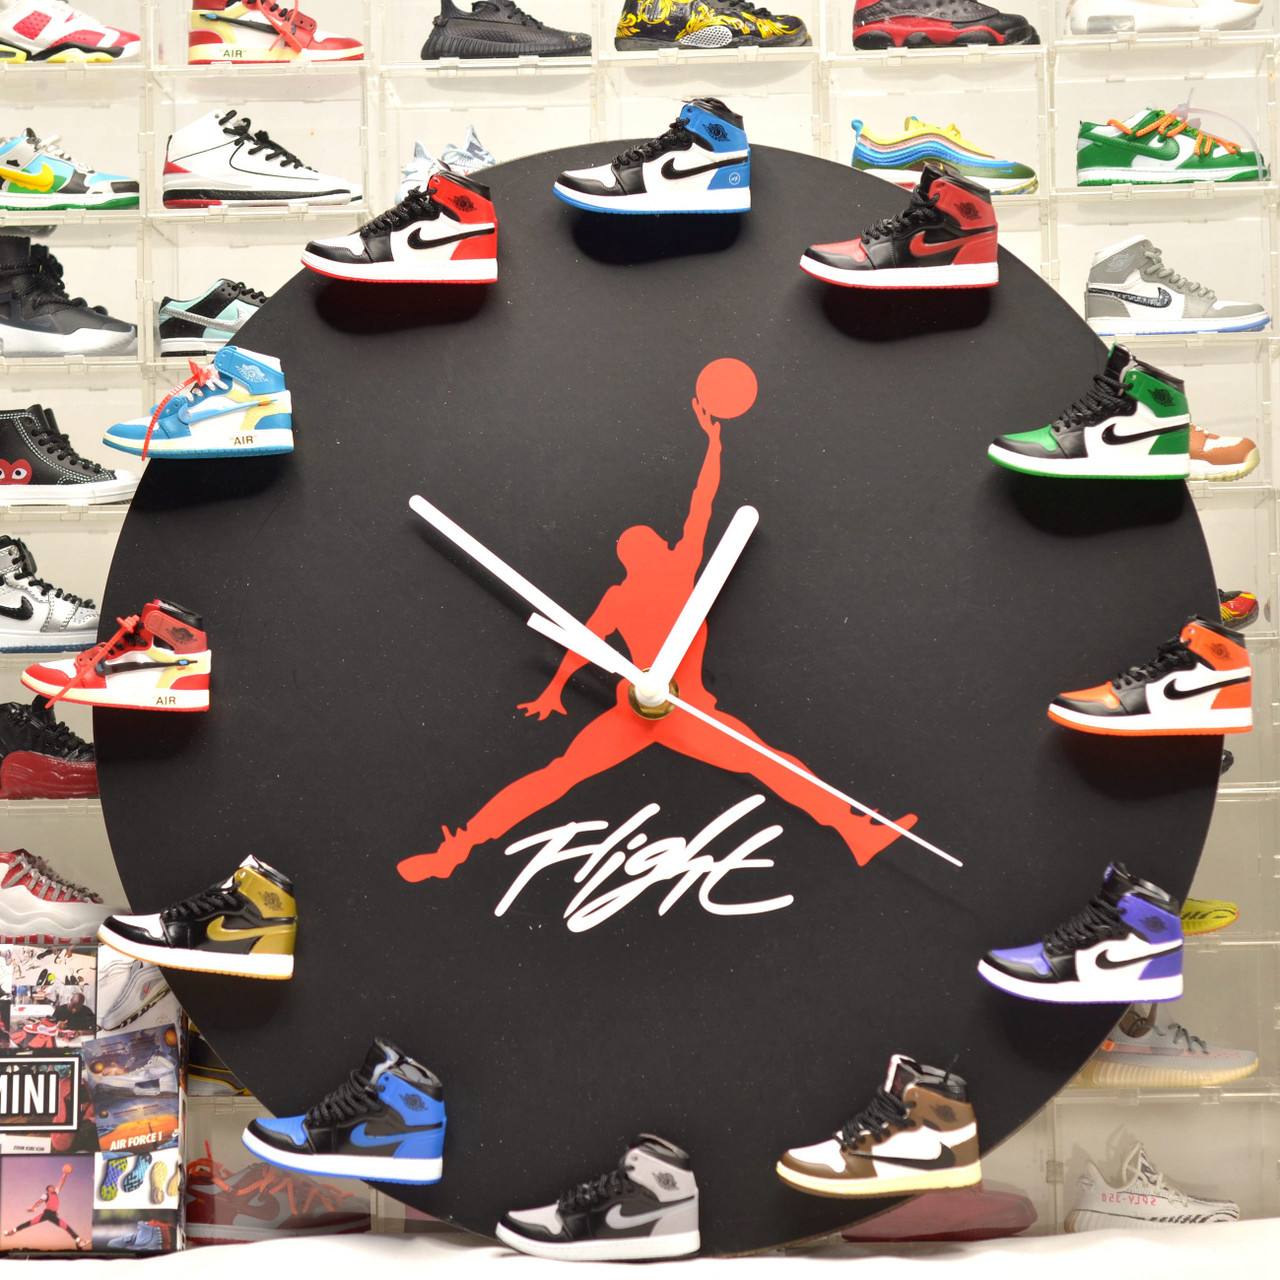 Handcrafted AJ 3D Sneakers Clock with All AJ1 Mini Sneakers